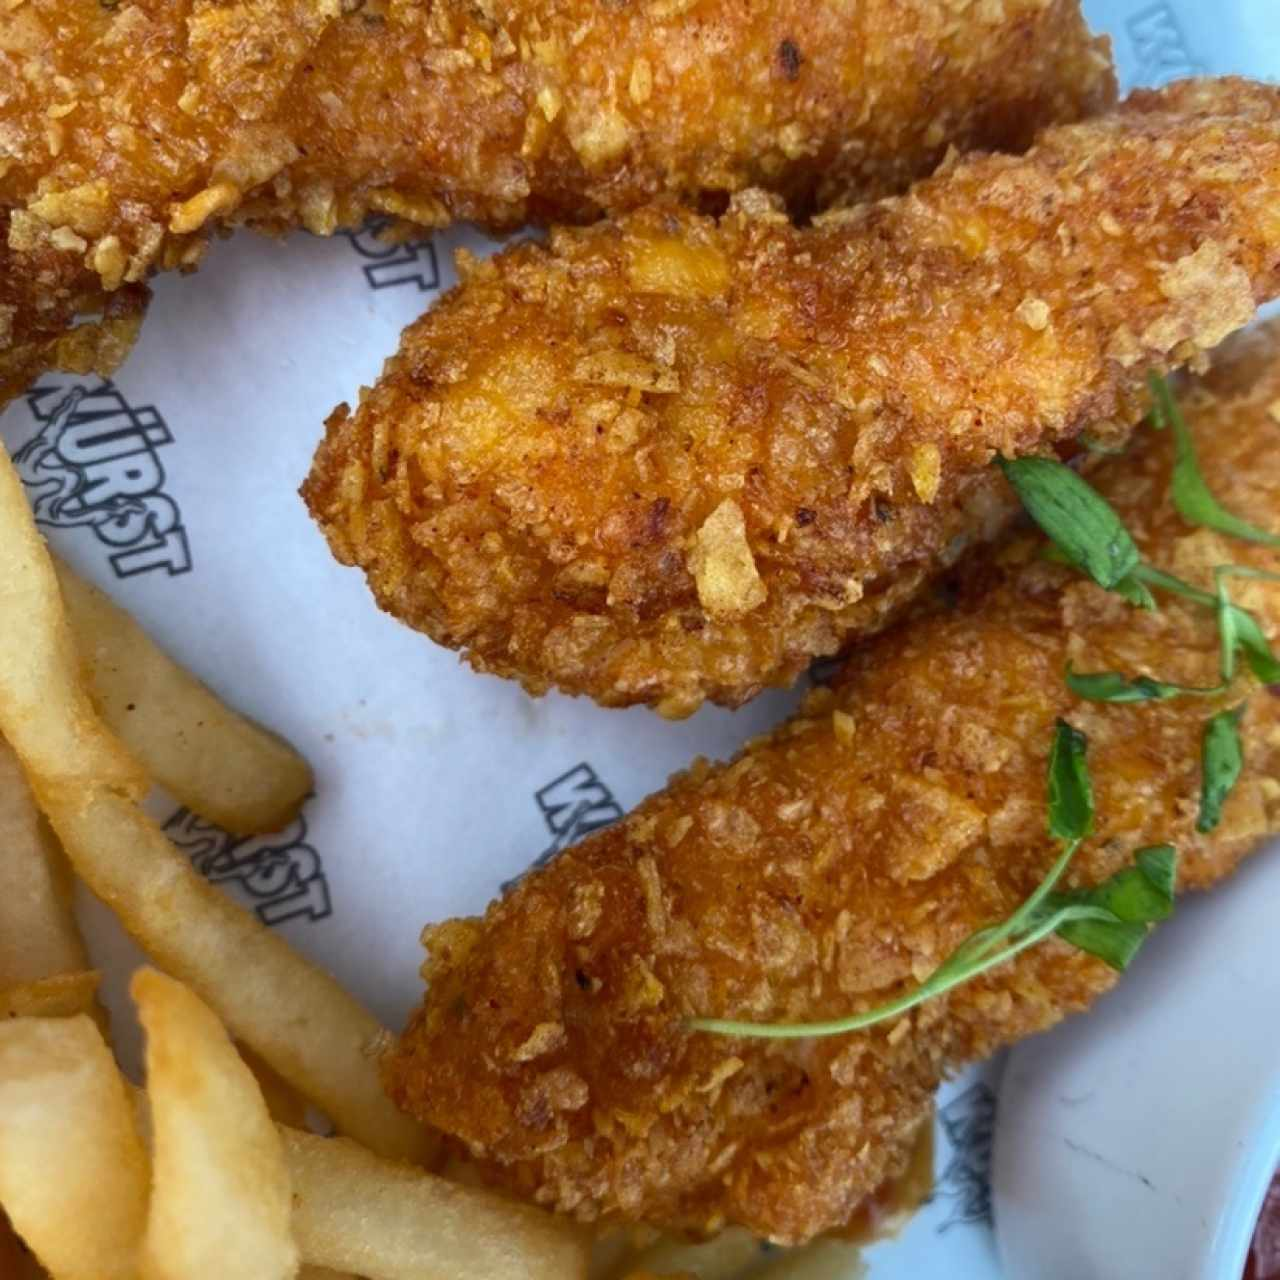 Tenders Wurst - Chicken Tenders